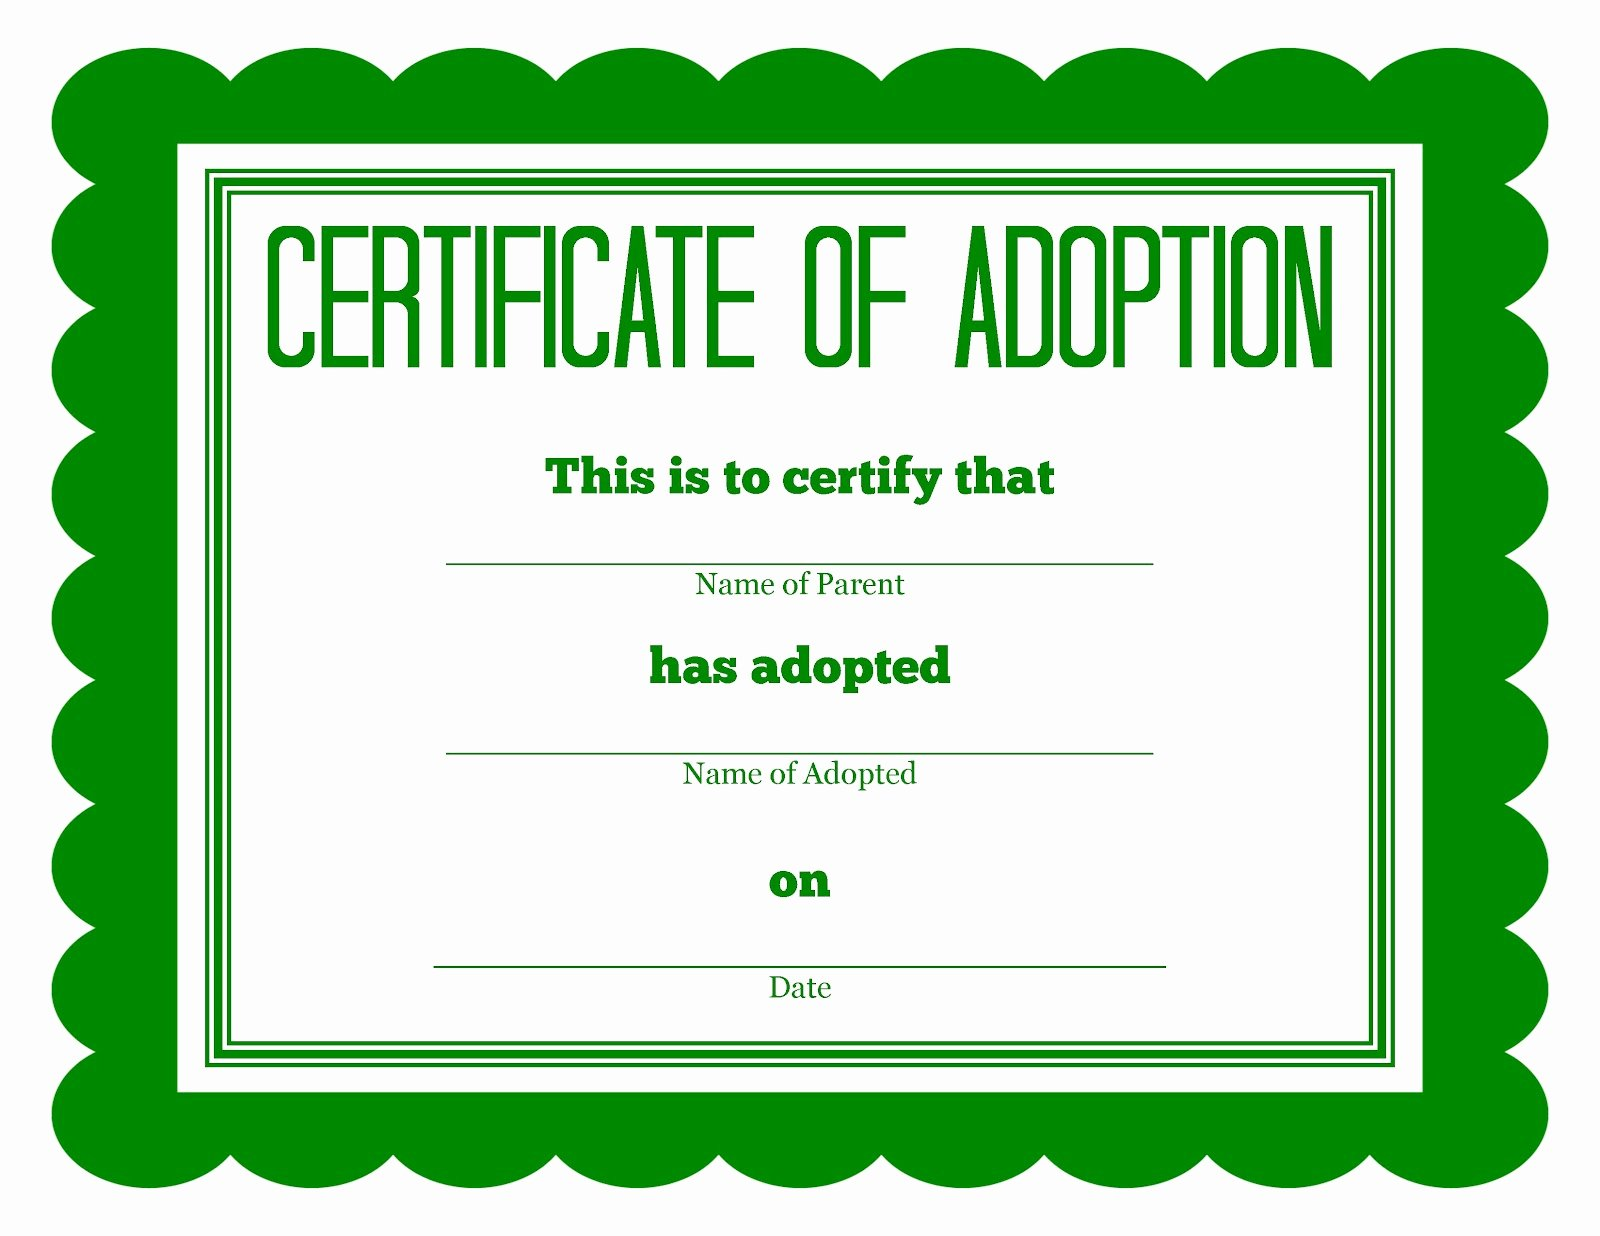 Stuffed Animal Adoption Certificate Template Best Of More Stuffed Animal Adoption Certificates